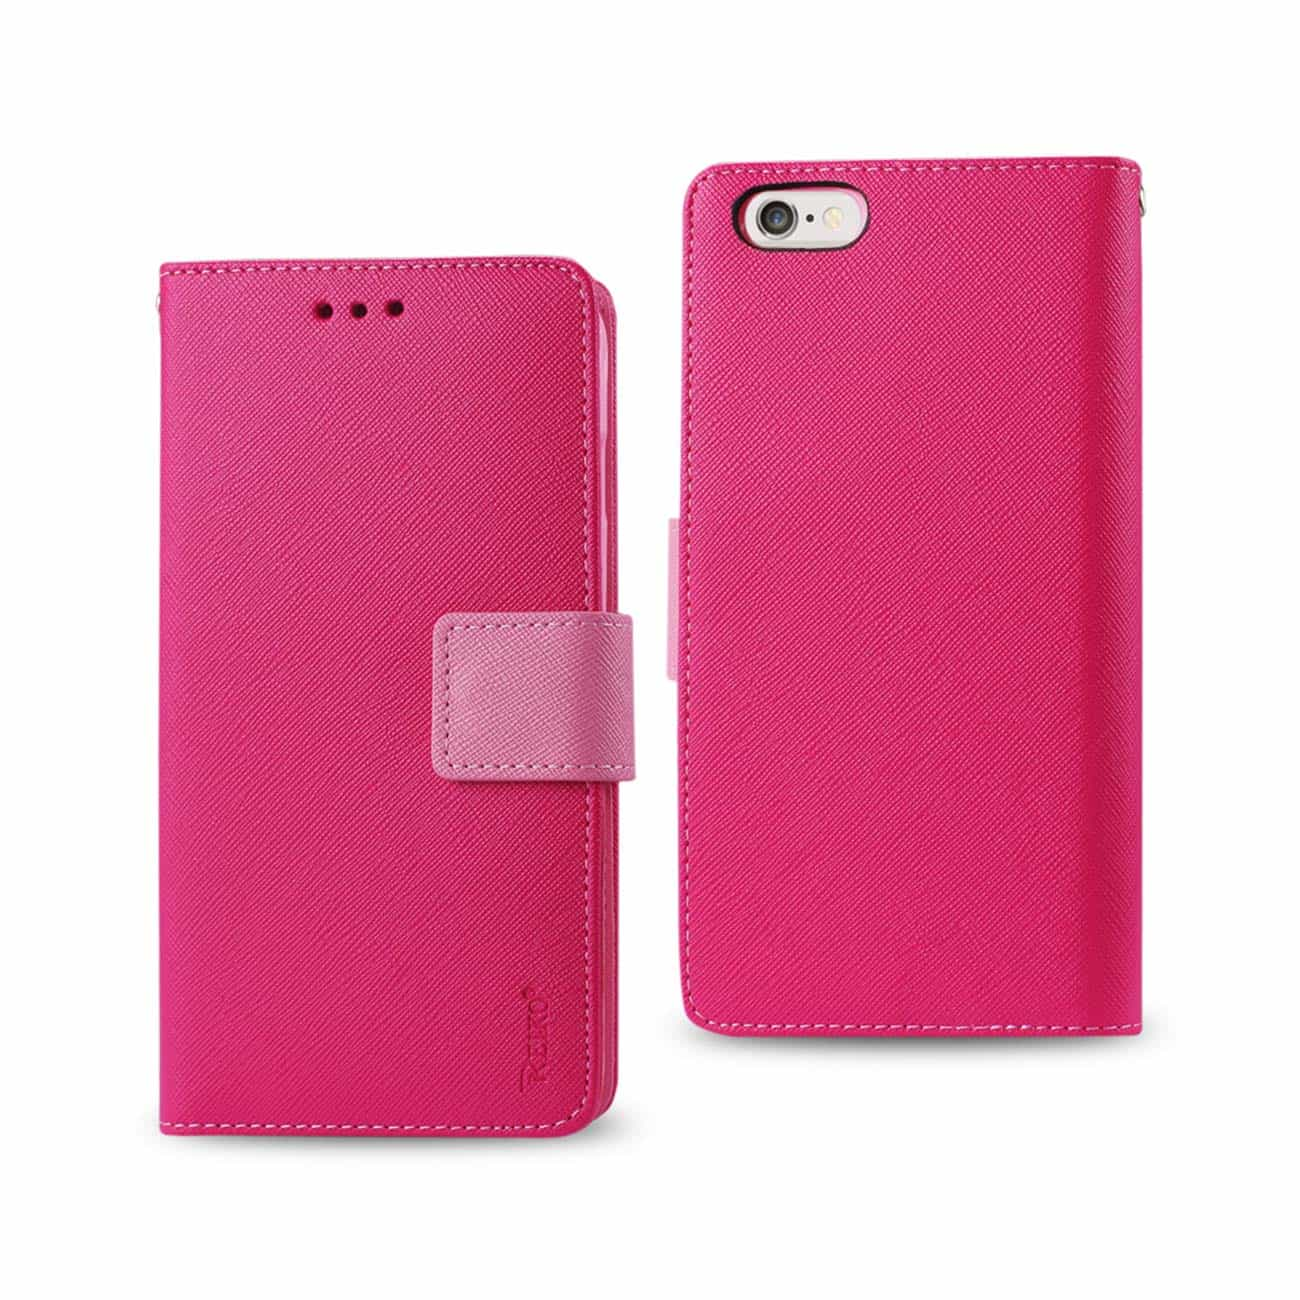 IPHONE 6 PLUS 3-IN-1 WALLET CASE IN HOT PINK